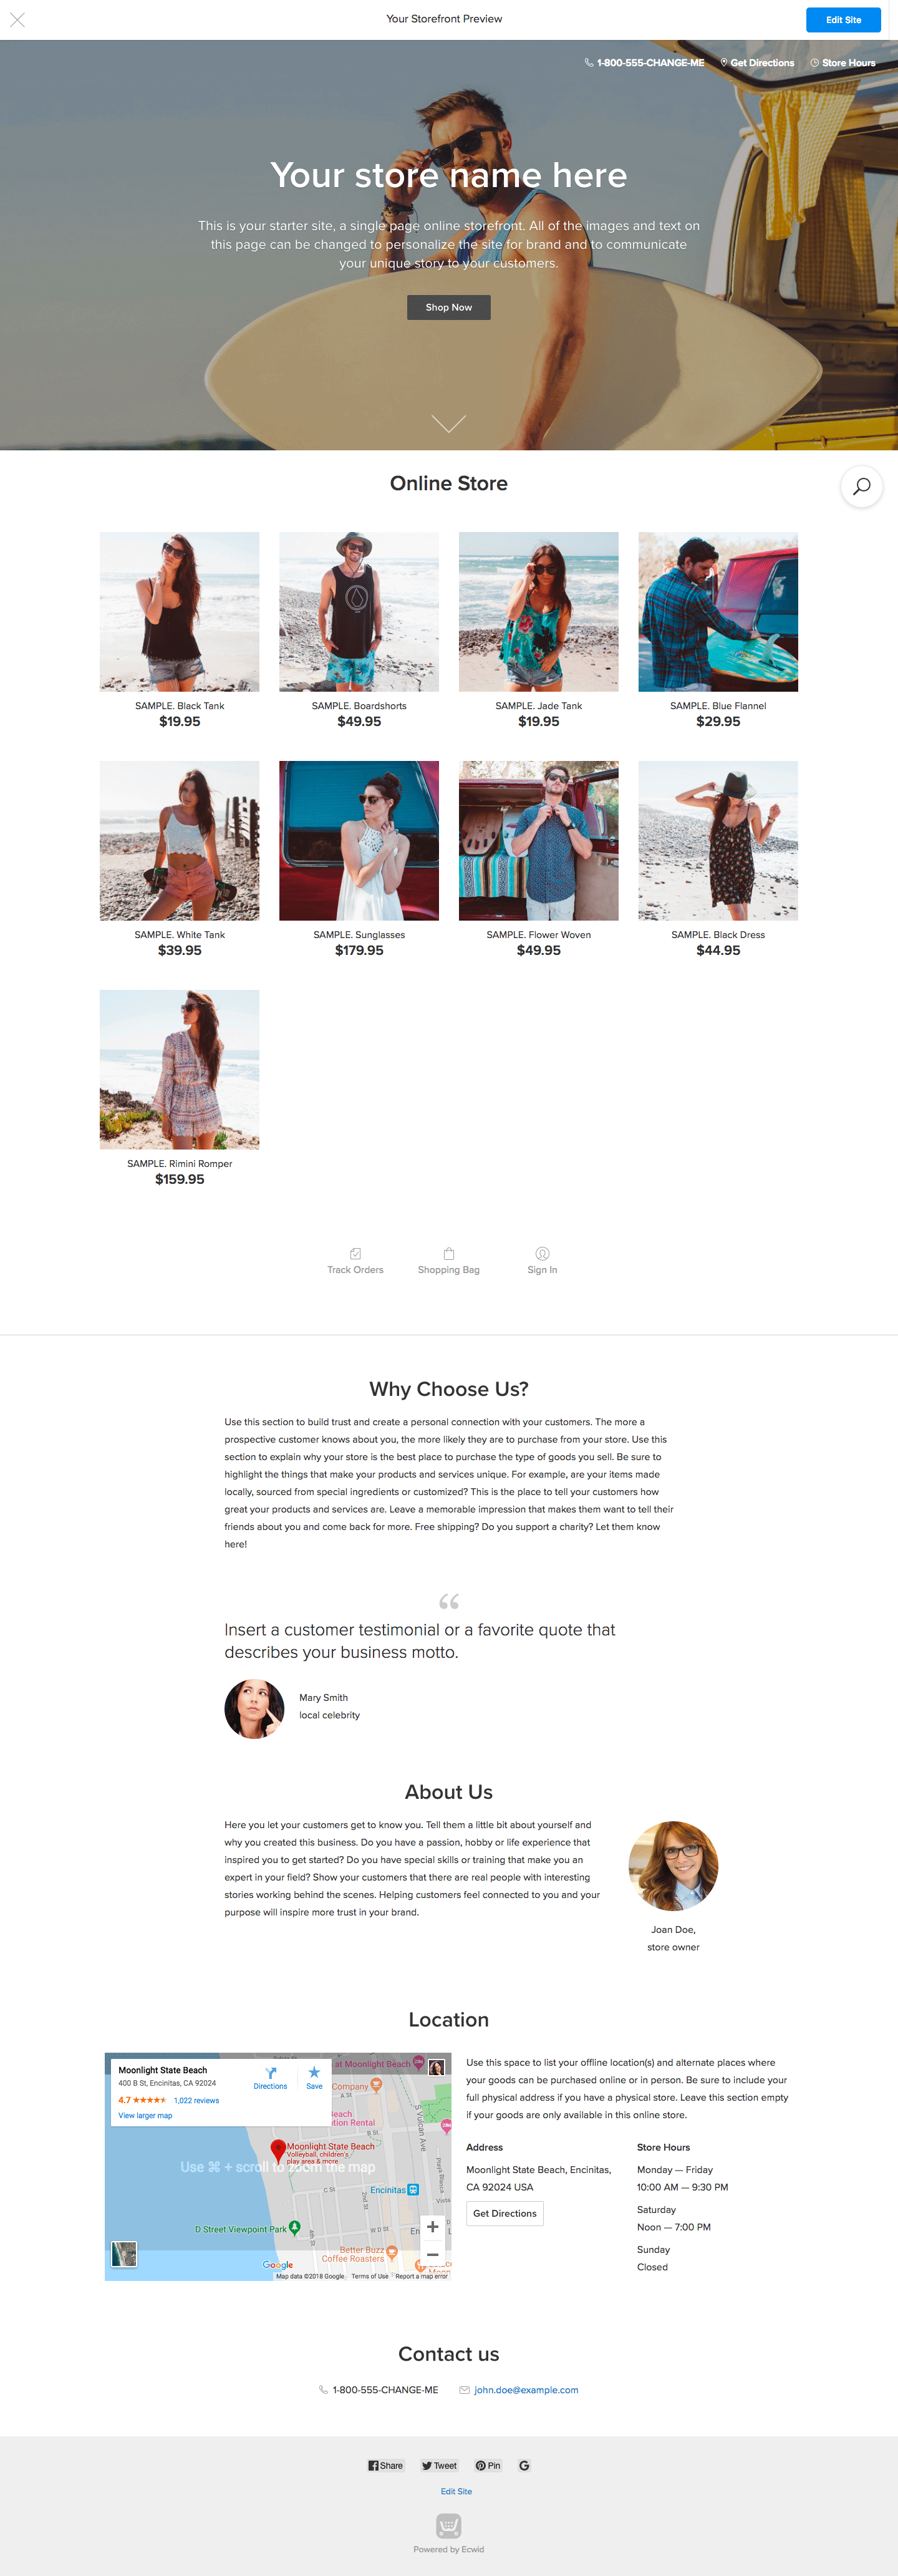 Screengrab of landing page for Ecwid demo store